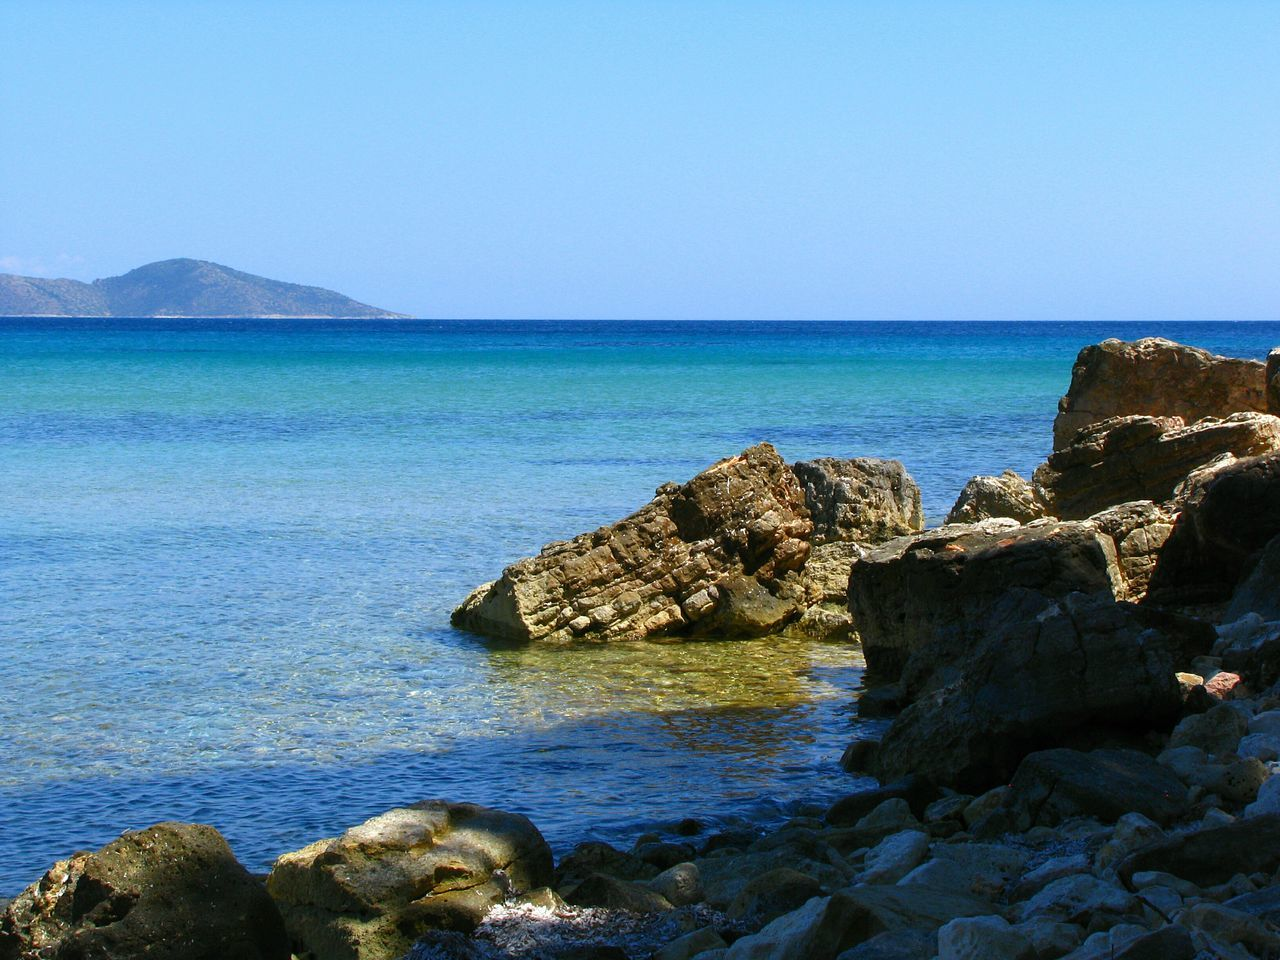 Beach Rocky Beach Photography Rocky Beach Sea Water Tranquil Scene Beauty In Nature Nature Landscapes Seascape Blue Sea Shades Of Blue Tranquility Alonnisos Island Greek Islands Rock Formation Blue Horizons Rocks Rocks And Water